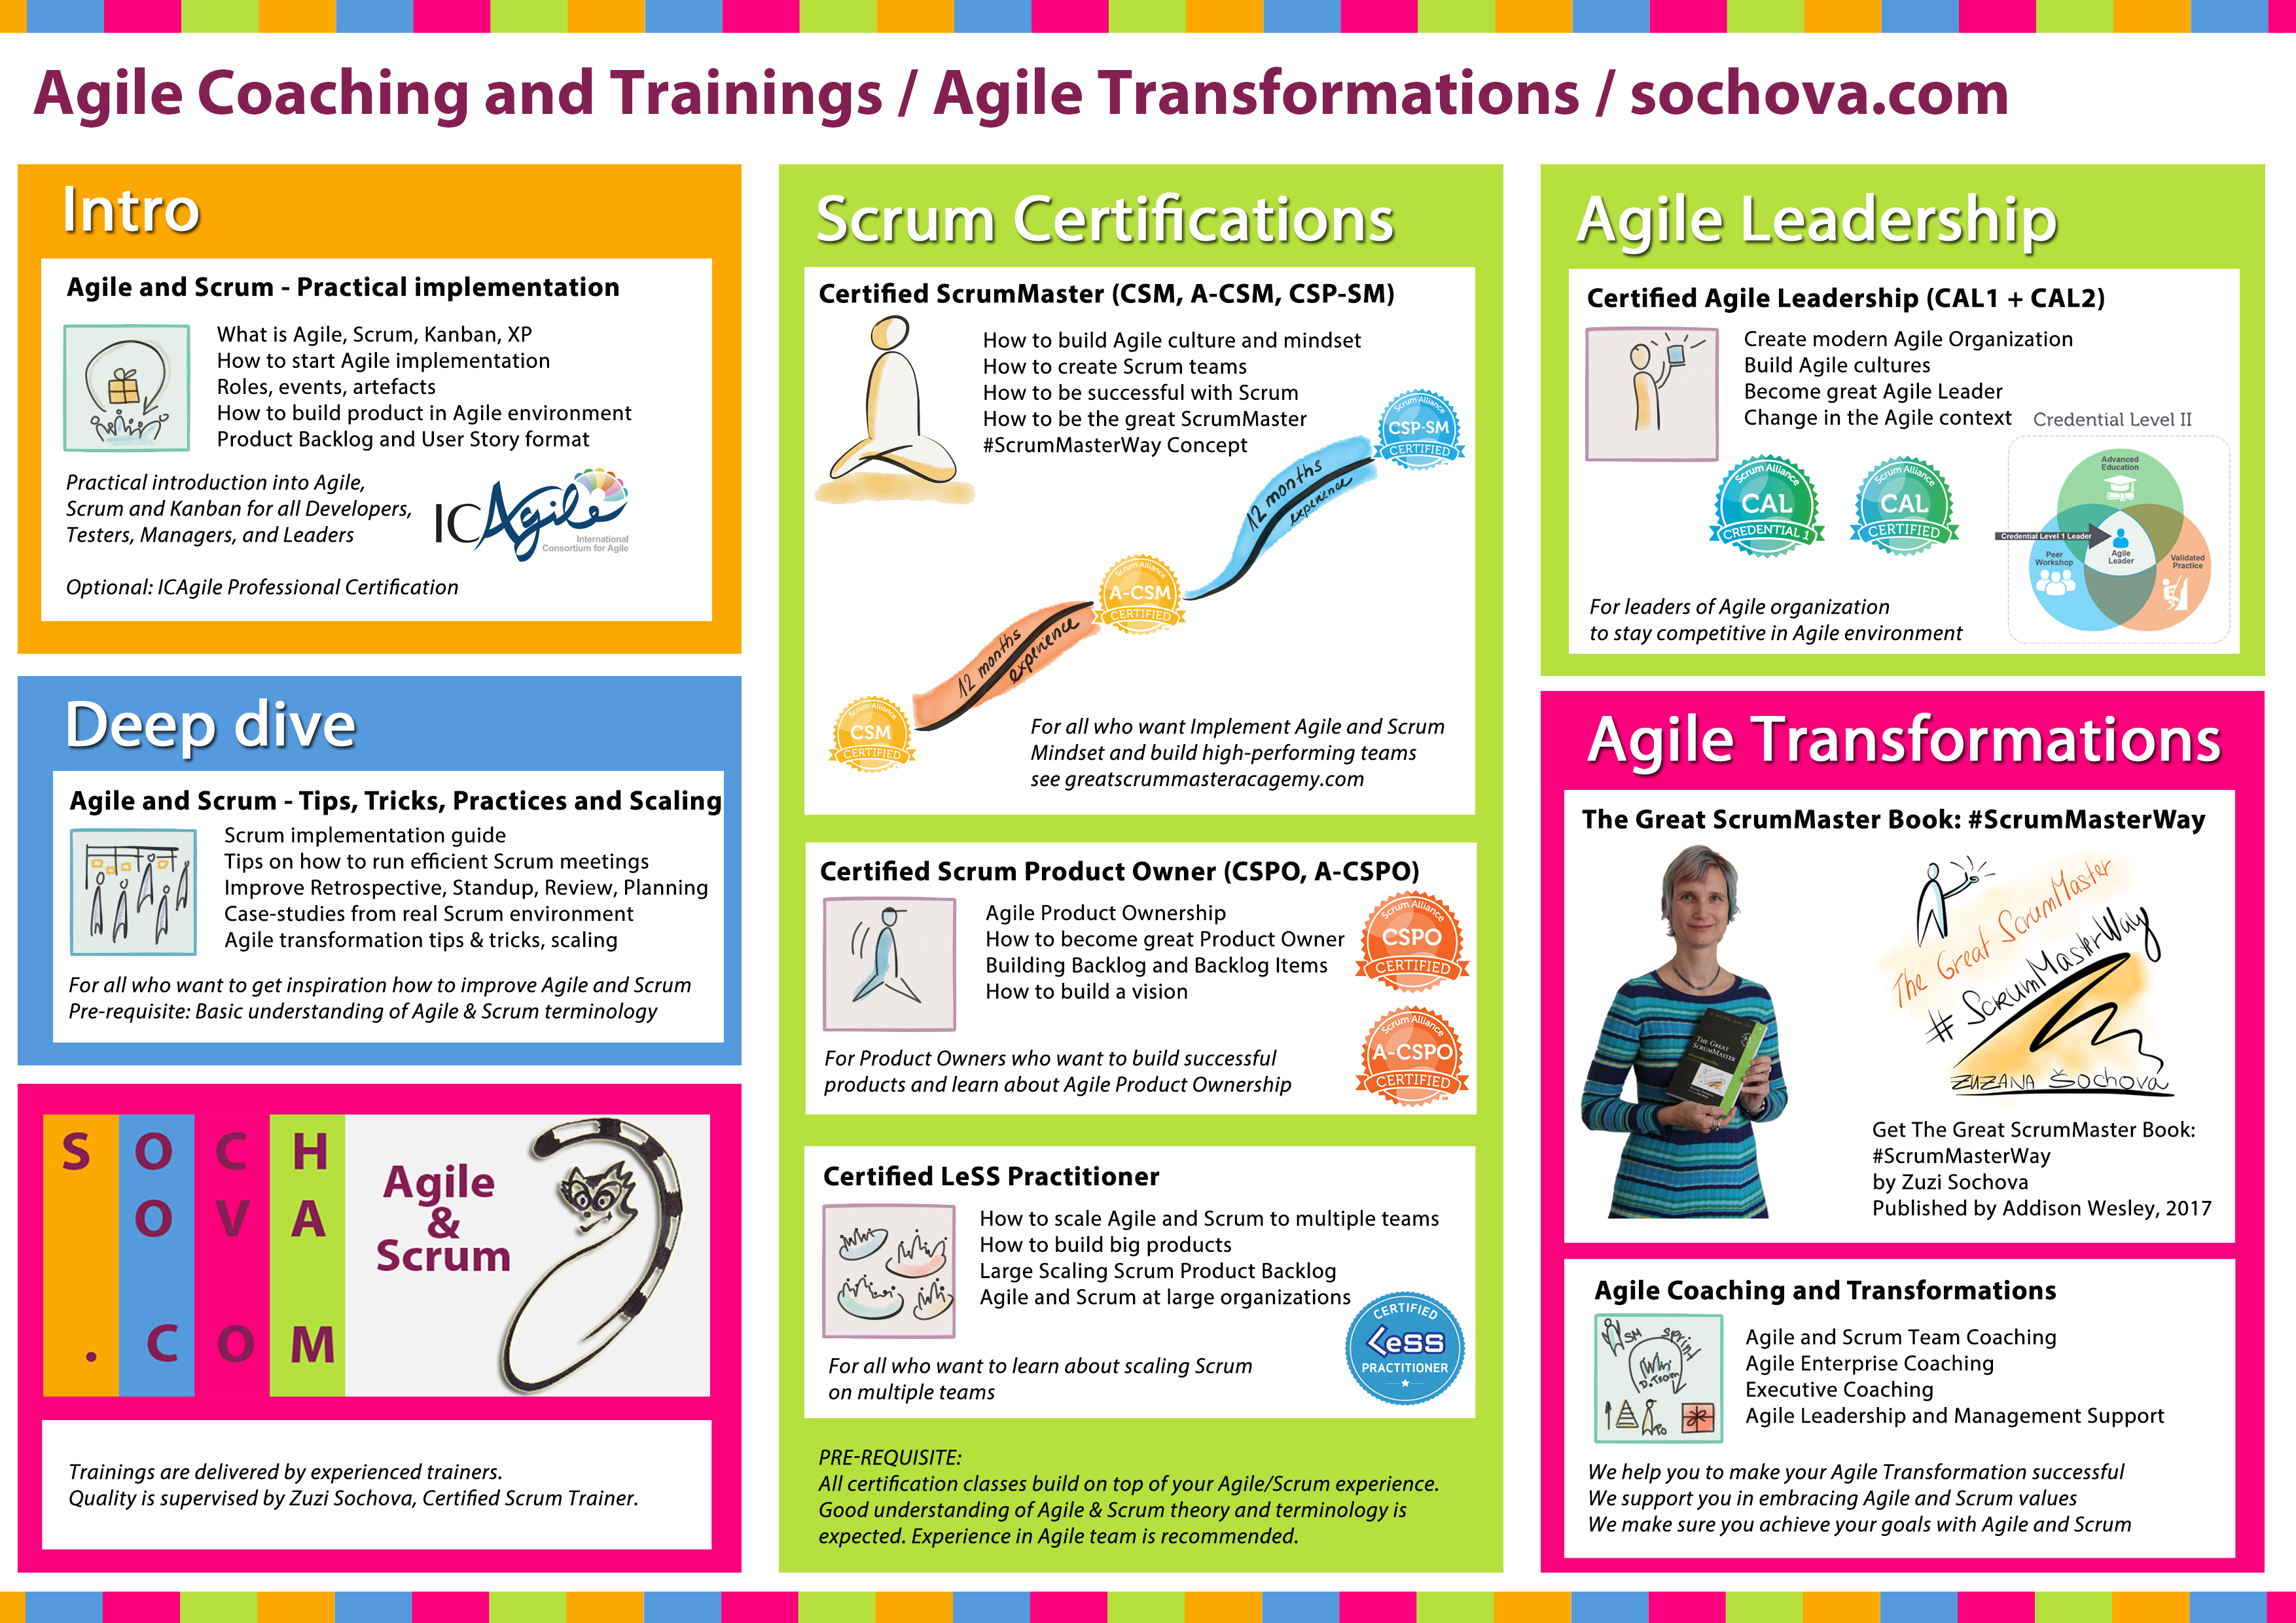 Trainings and Workshops on Agile and Scrum